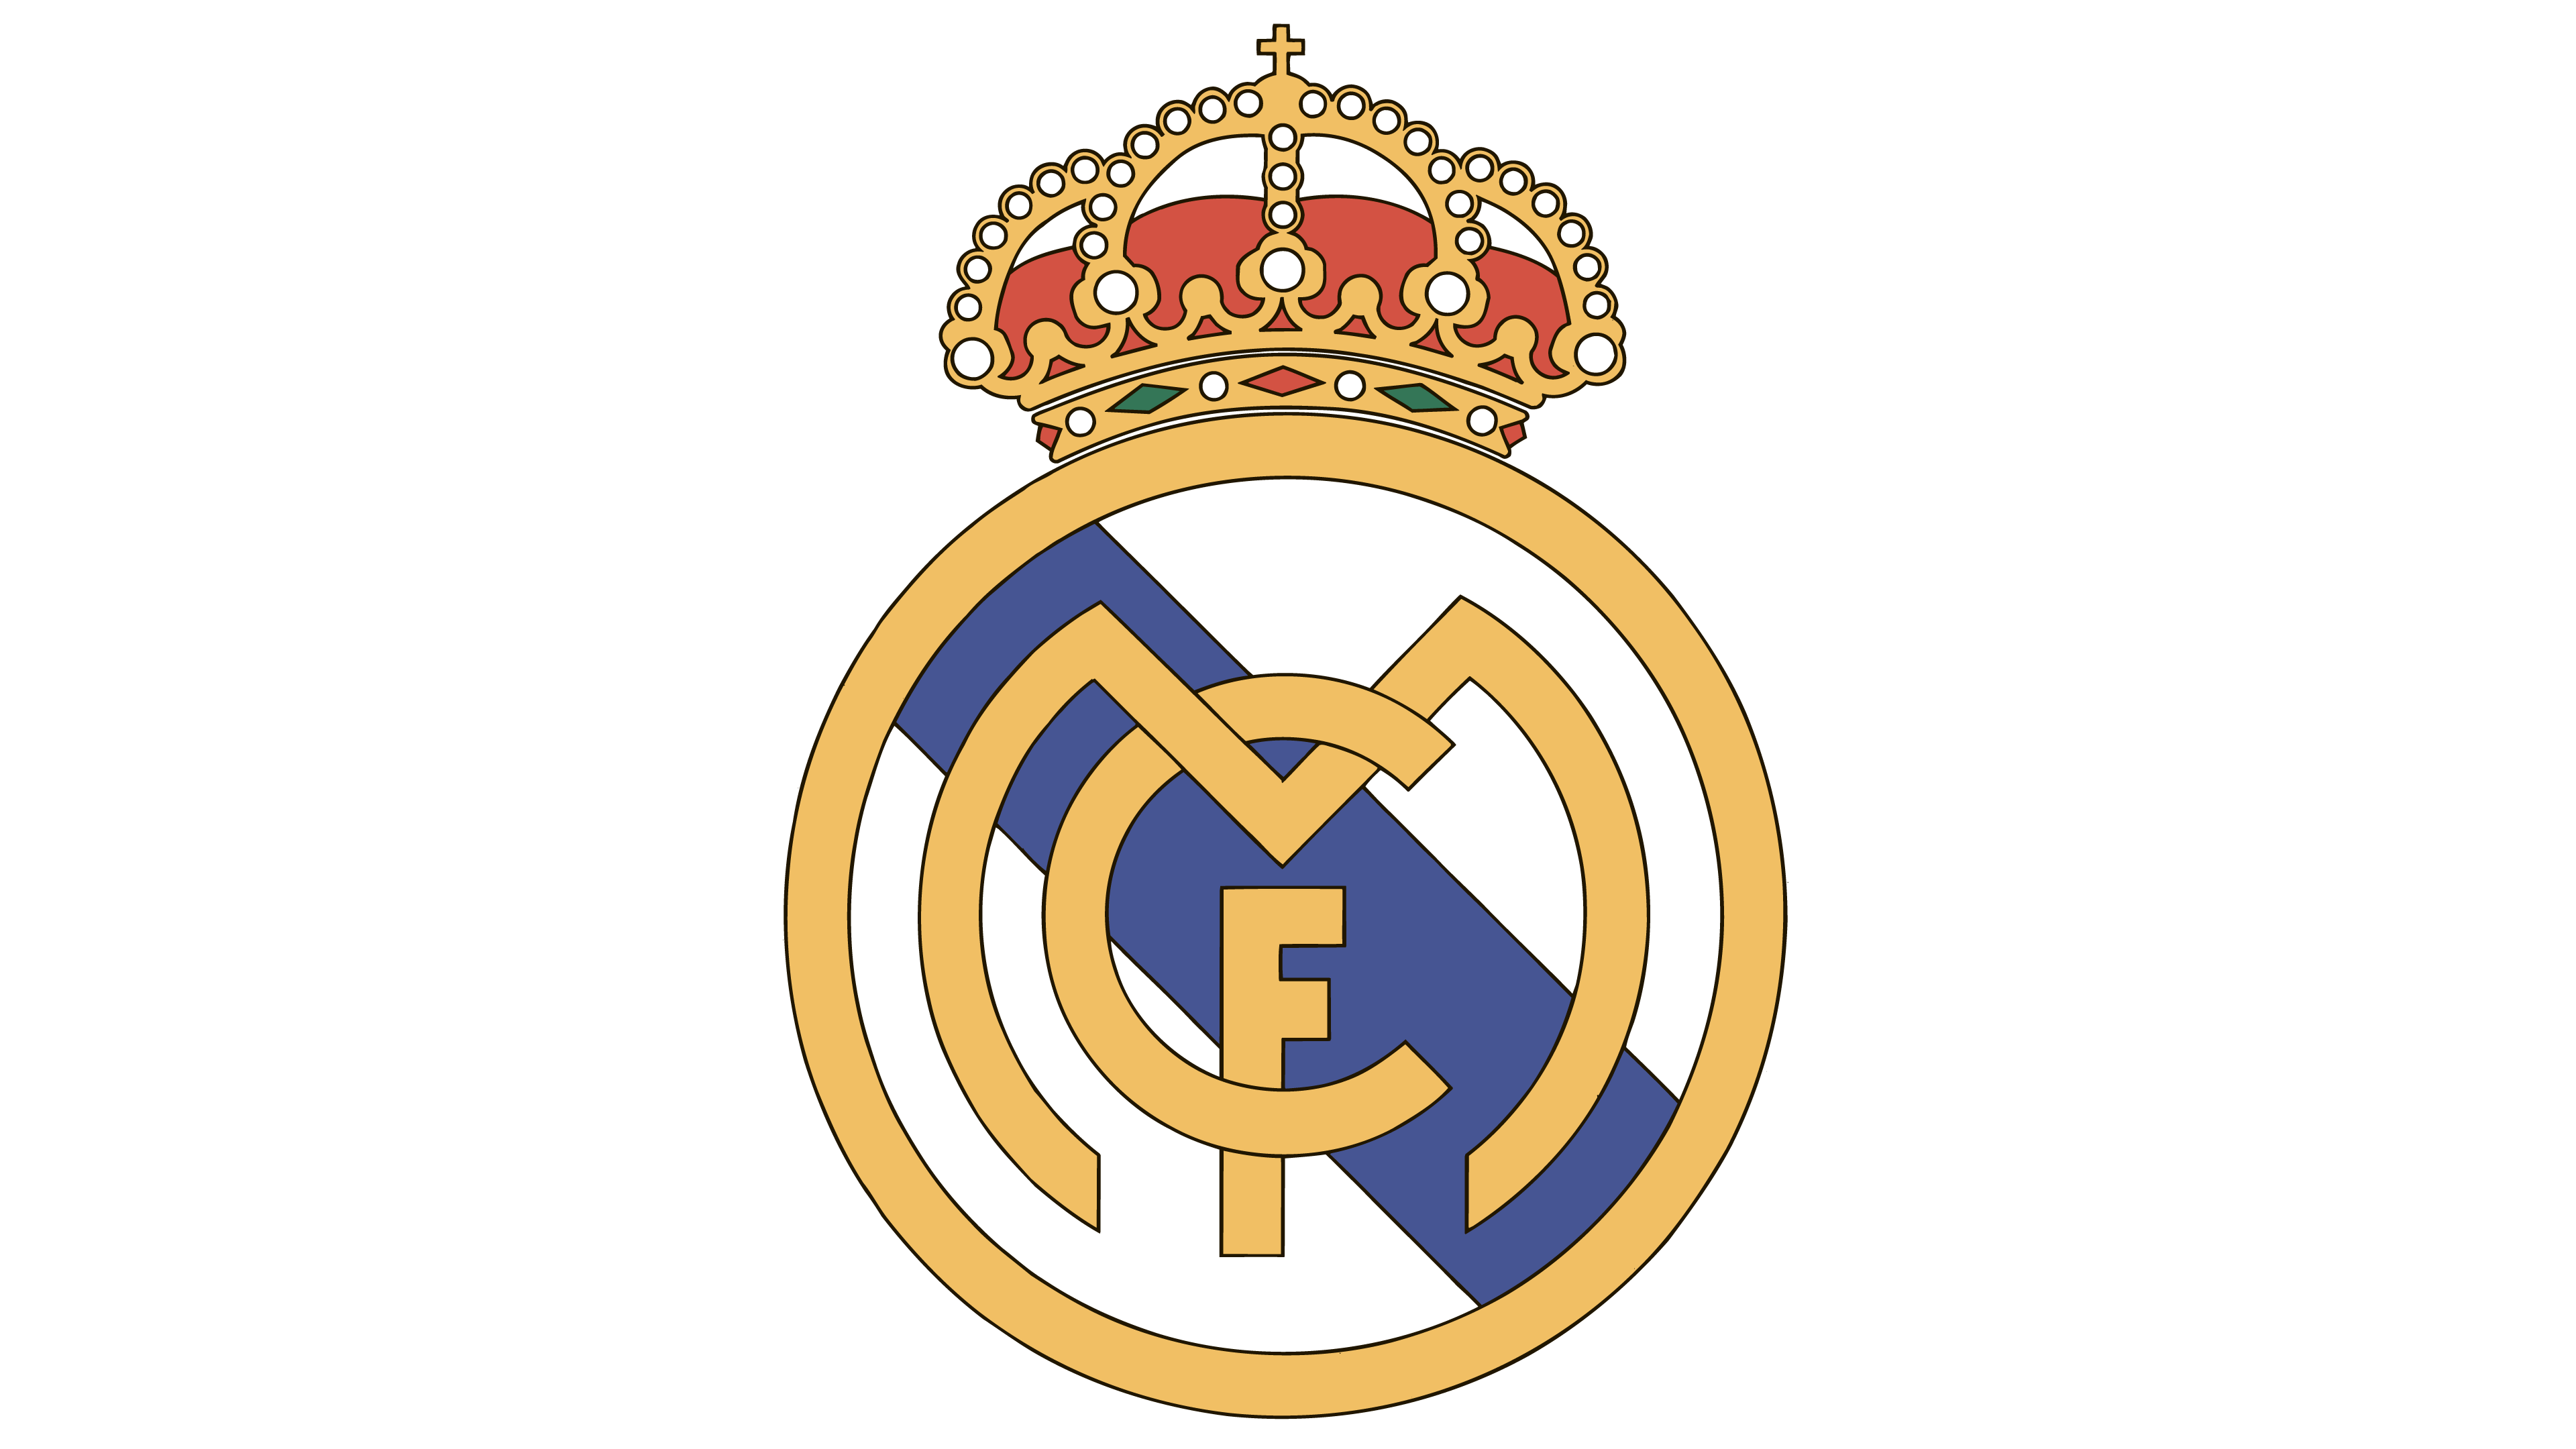 real madrid logo interesting history the team name and emblem #28349